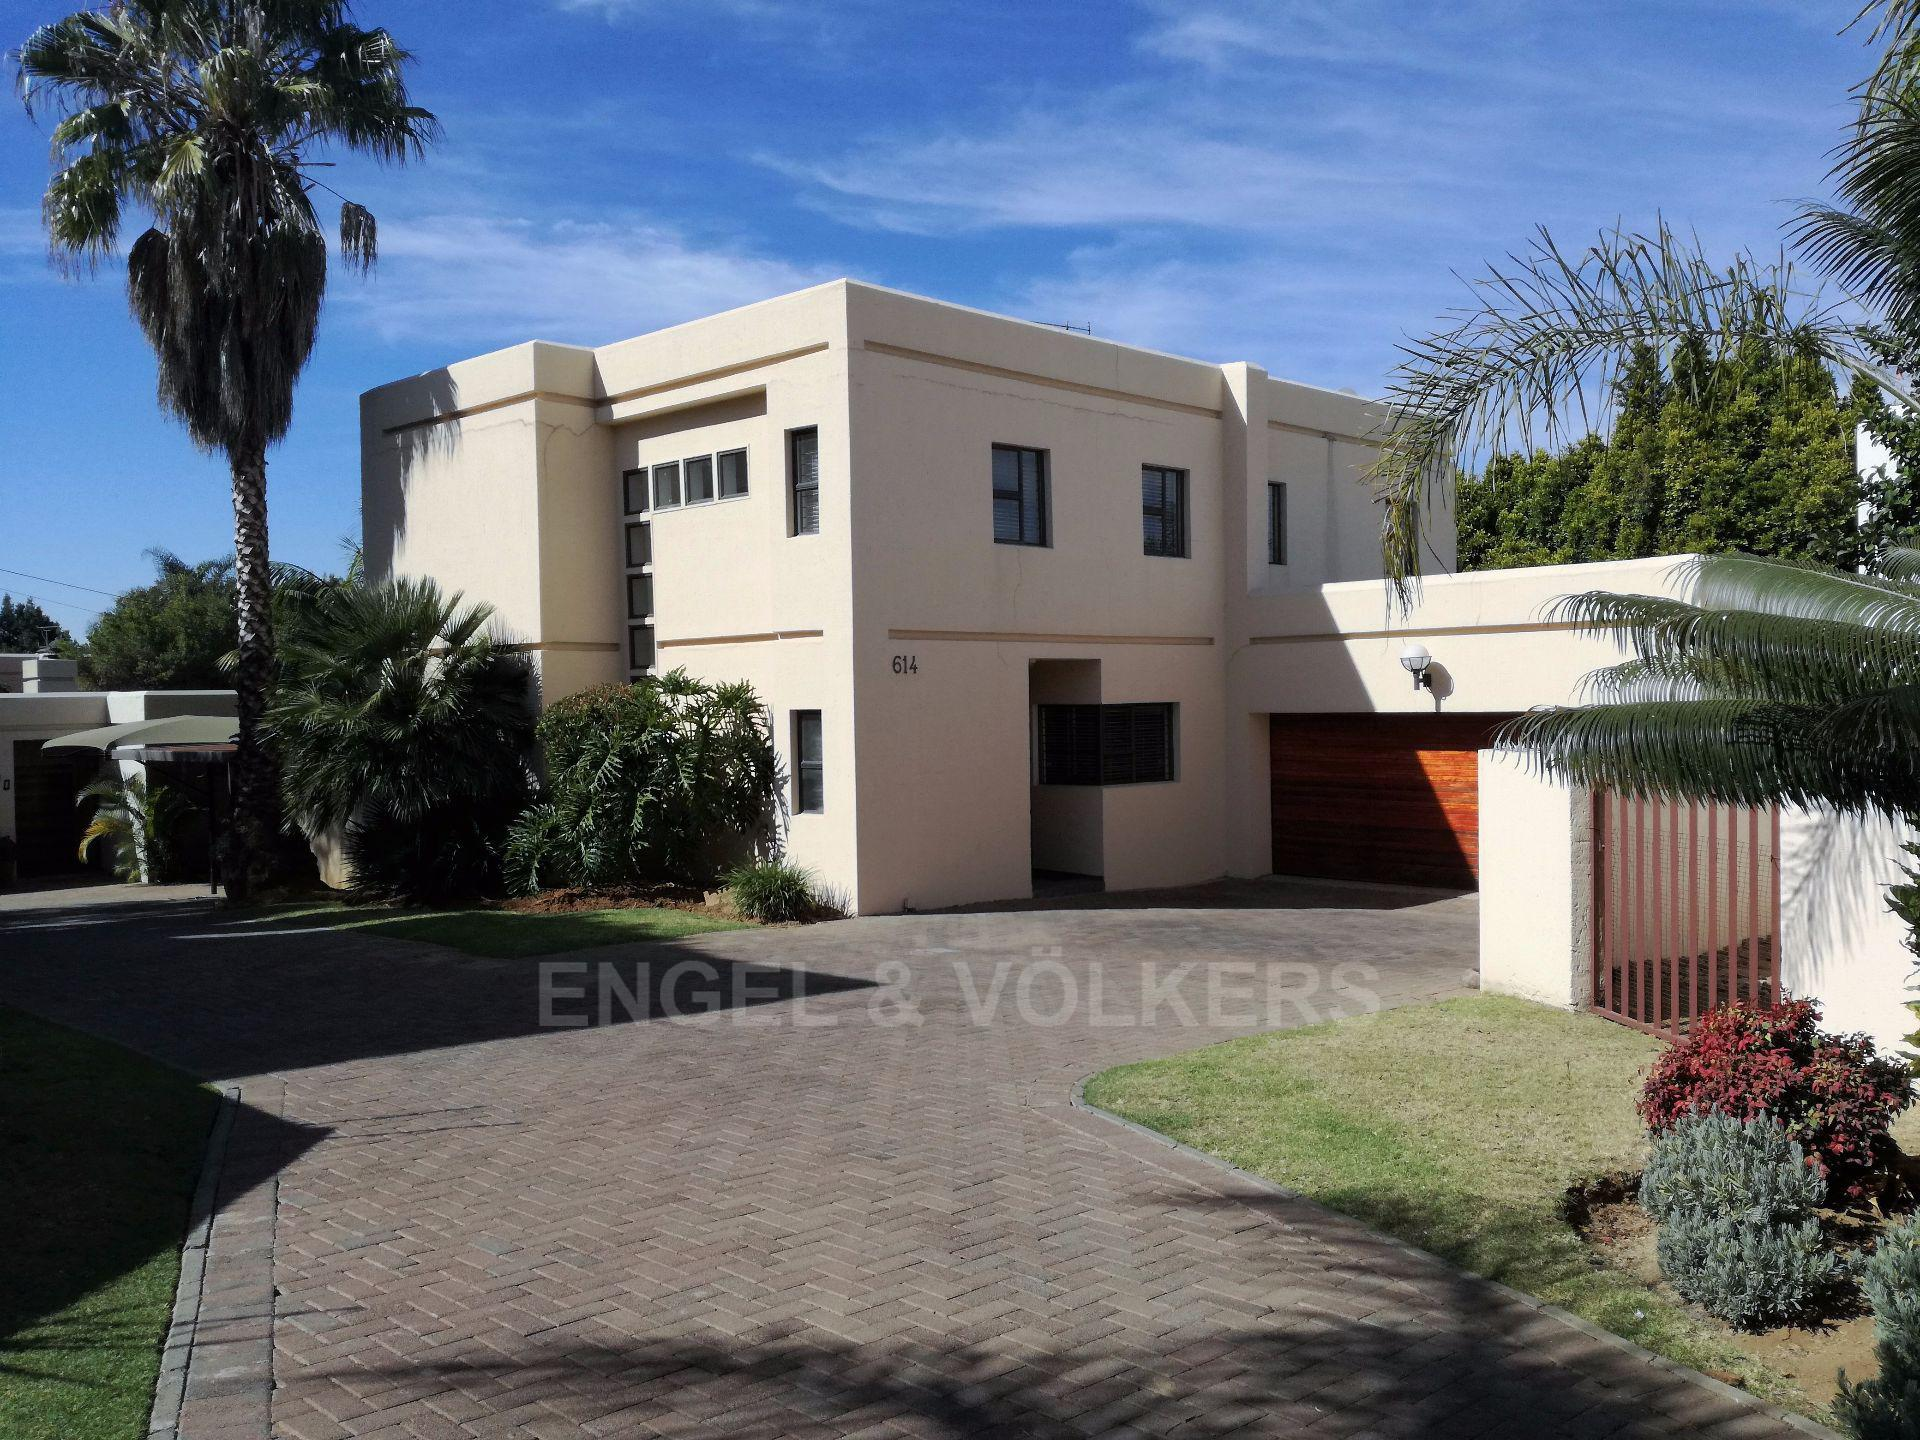 Property and Houses for sale in Erasmuskloof, House, 3 Bedrooms - ZAR 2,450,000